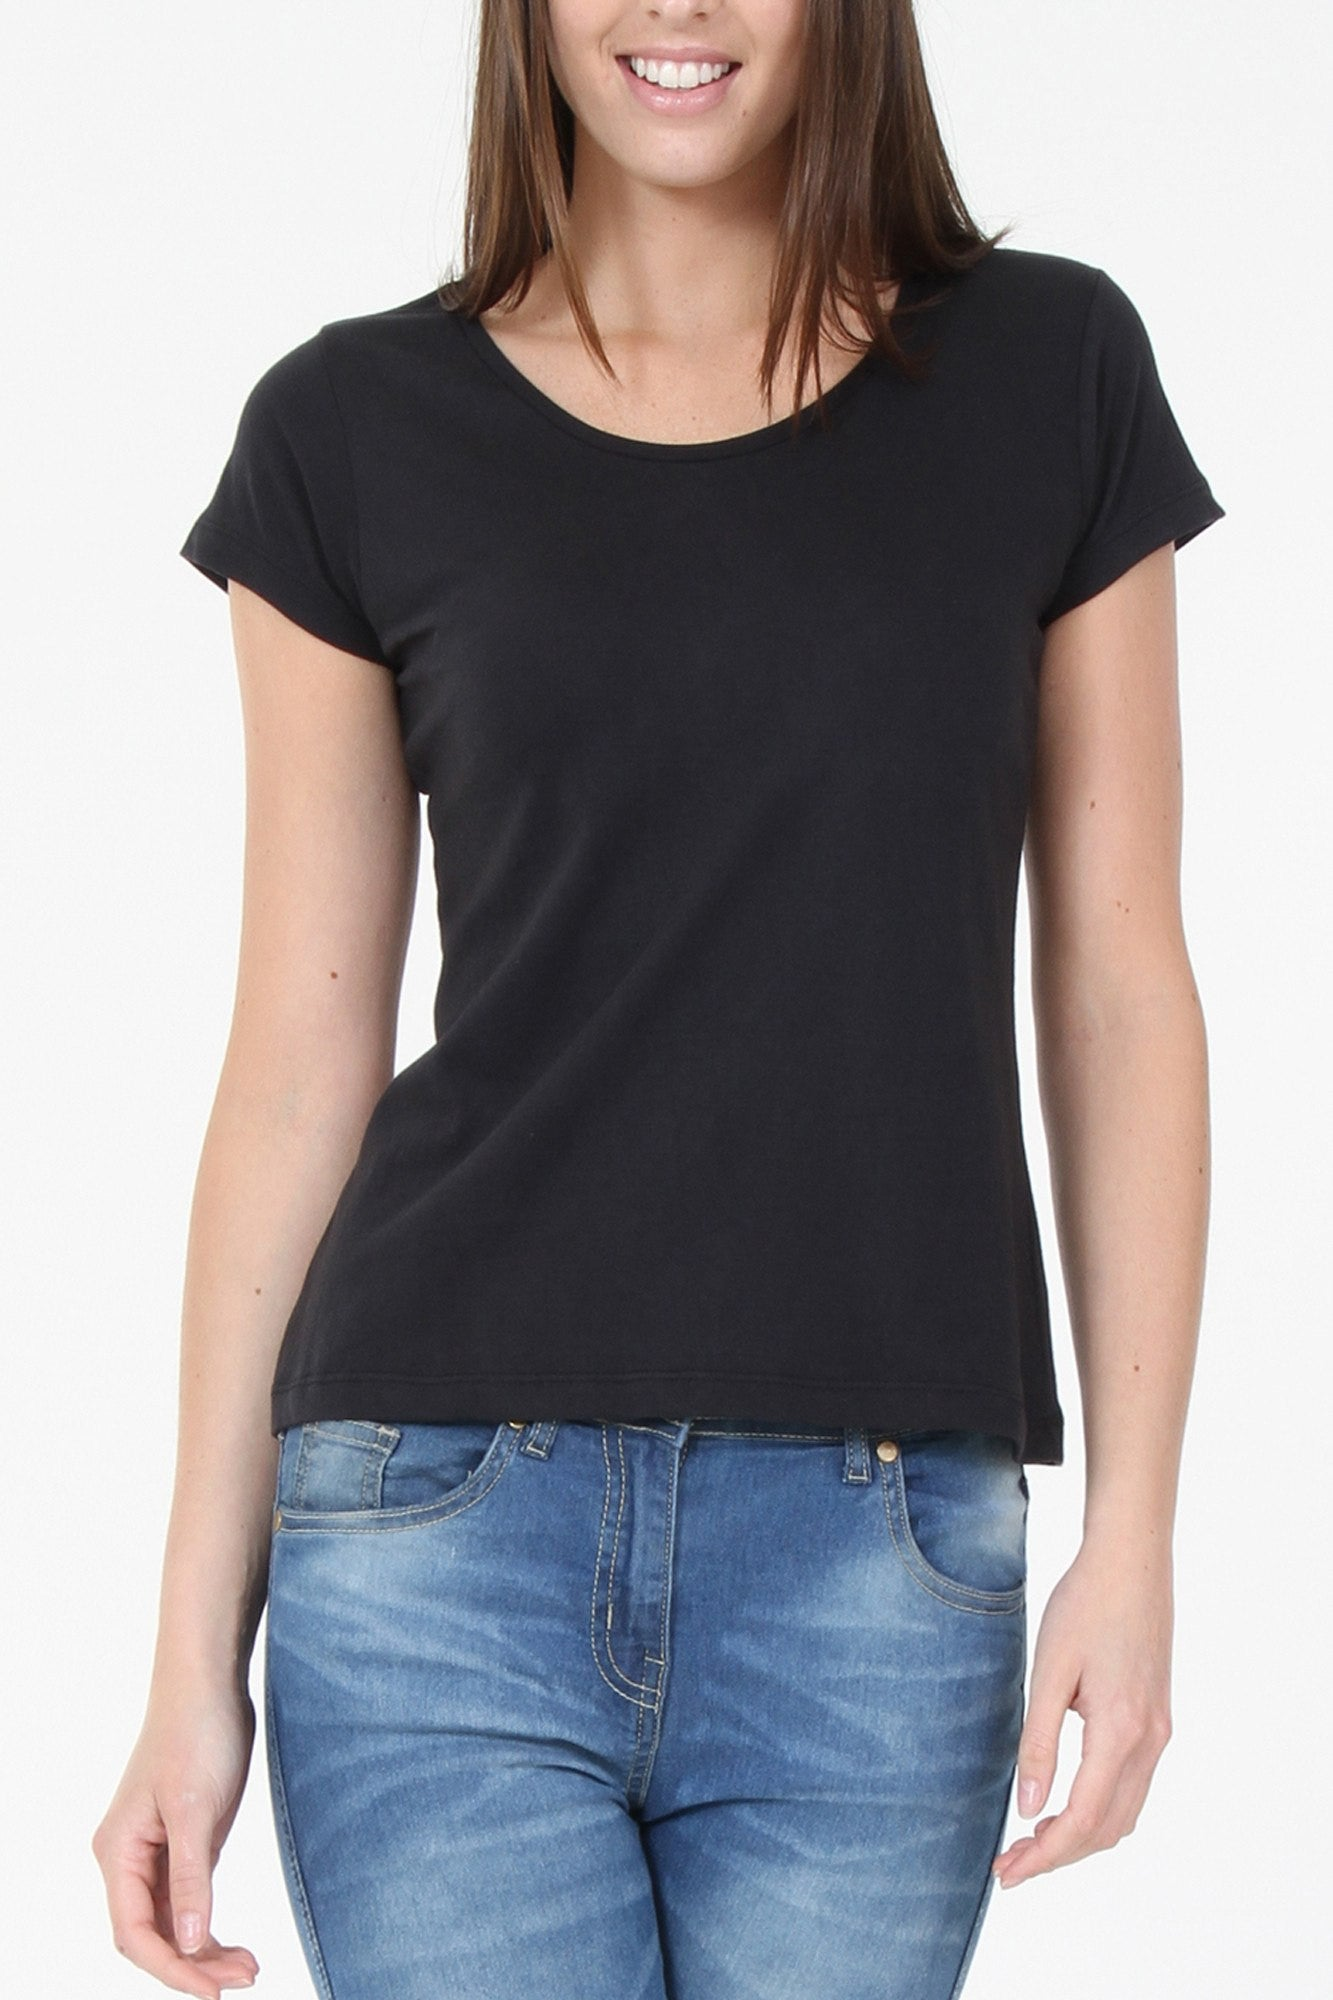 T-Shirts - Black Round Neck Basic T-Shirt